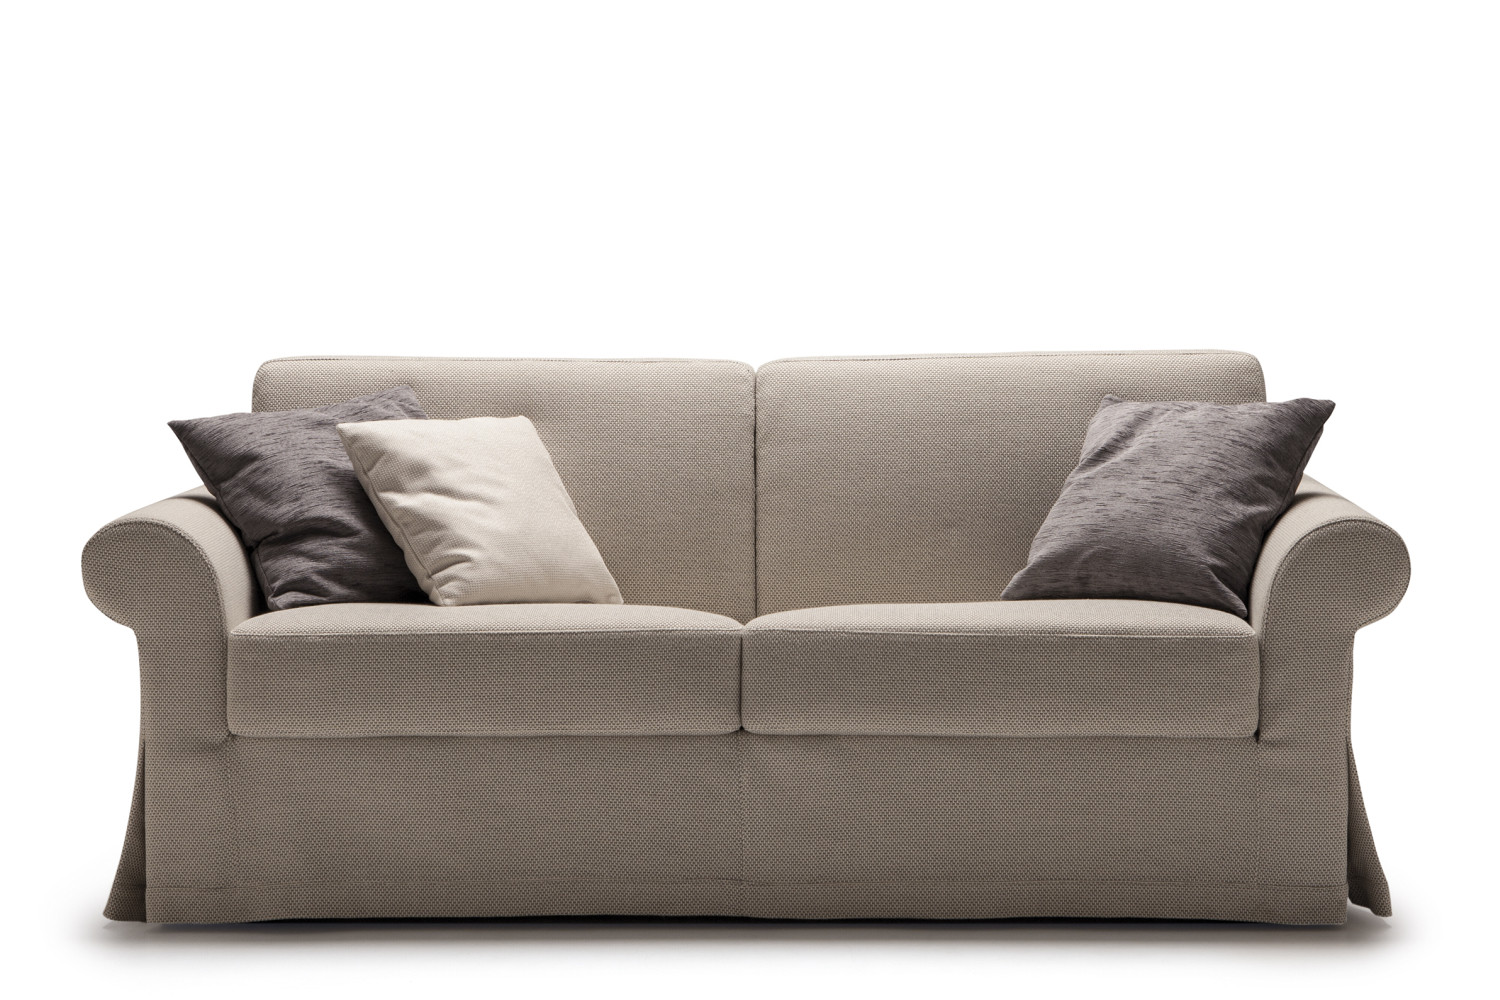 Ellis sofa bed with high mattress for Divano letto 180 cm